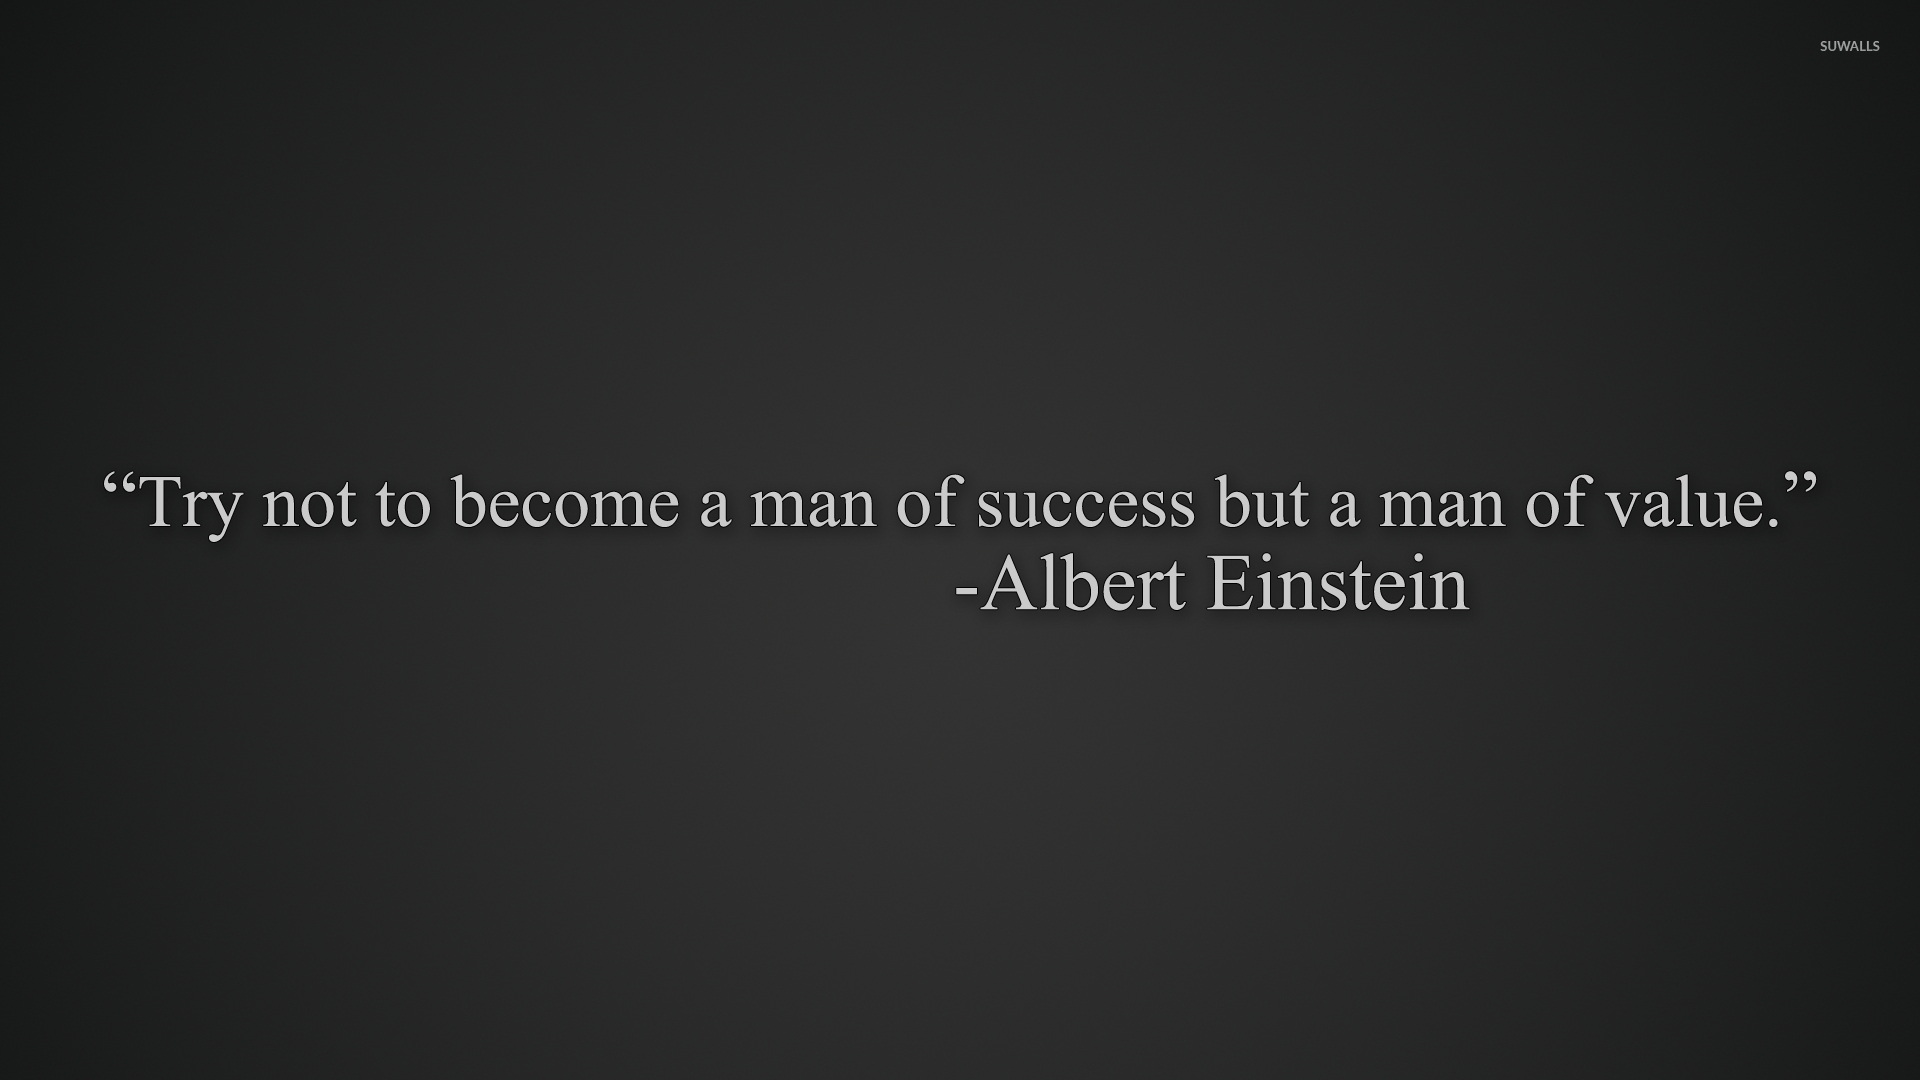 Try to become a man of value wallpaper   Quote wallpapers   44573 1920x1080